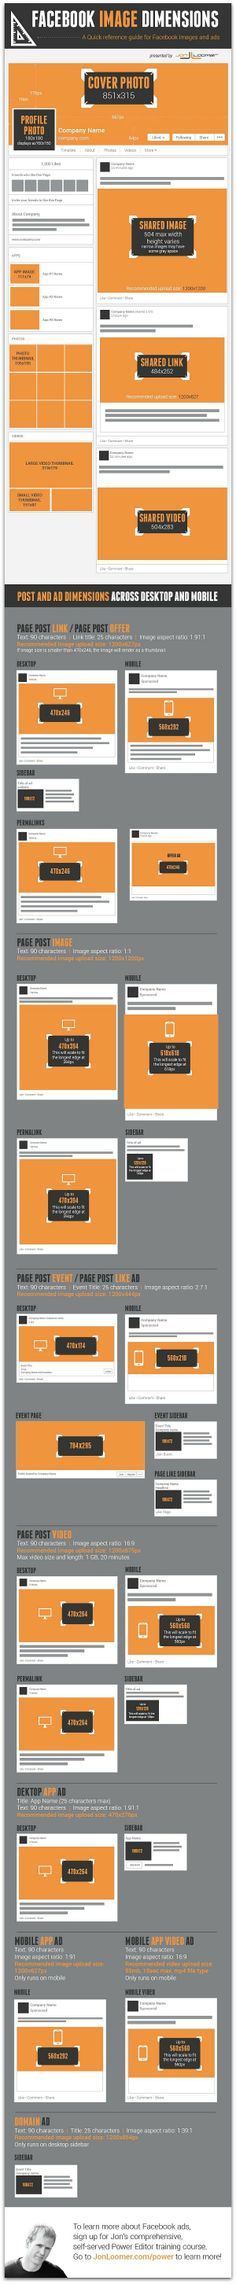 A quick guide to Facebook's new image dimensions [infographic]